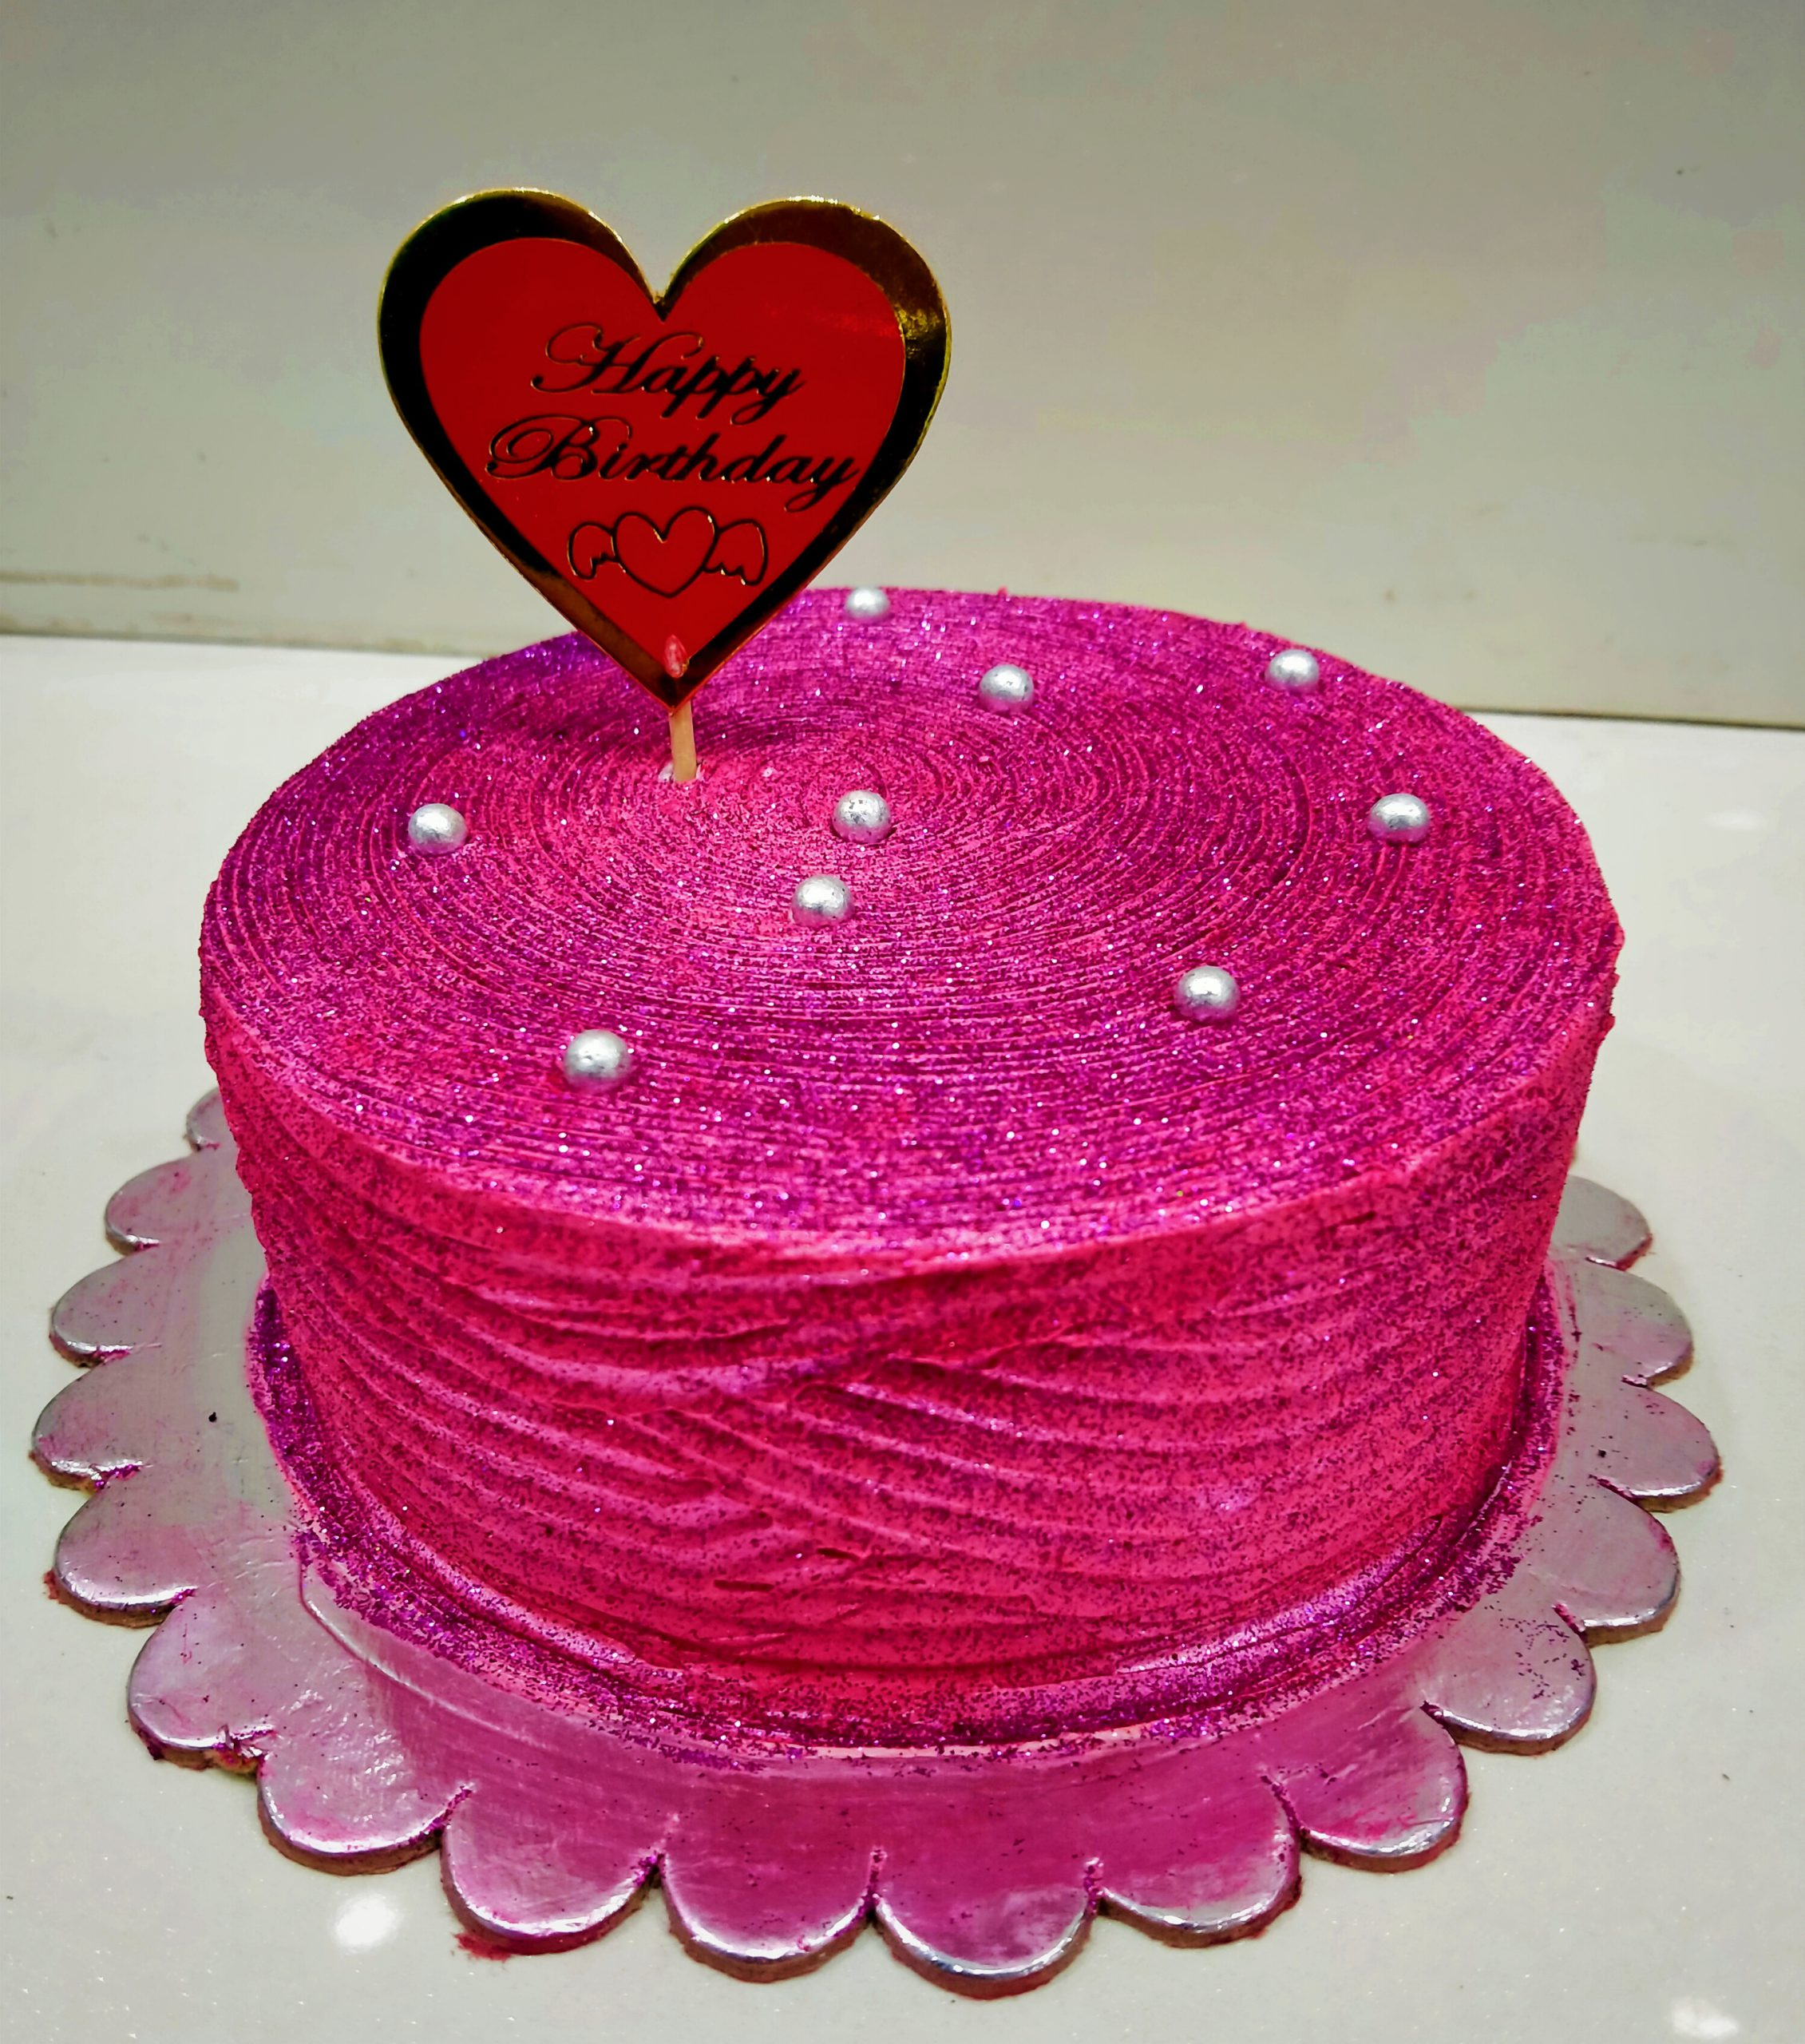 Blueberry Shimmer Cake Designs, Images, Price Near Me